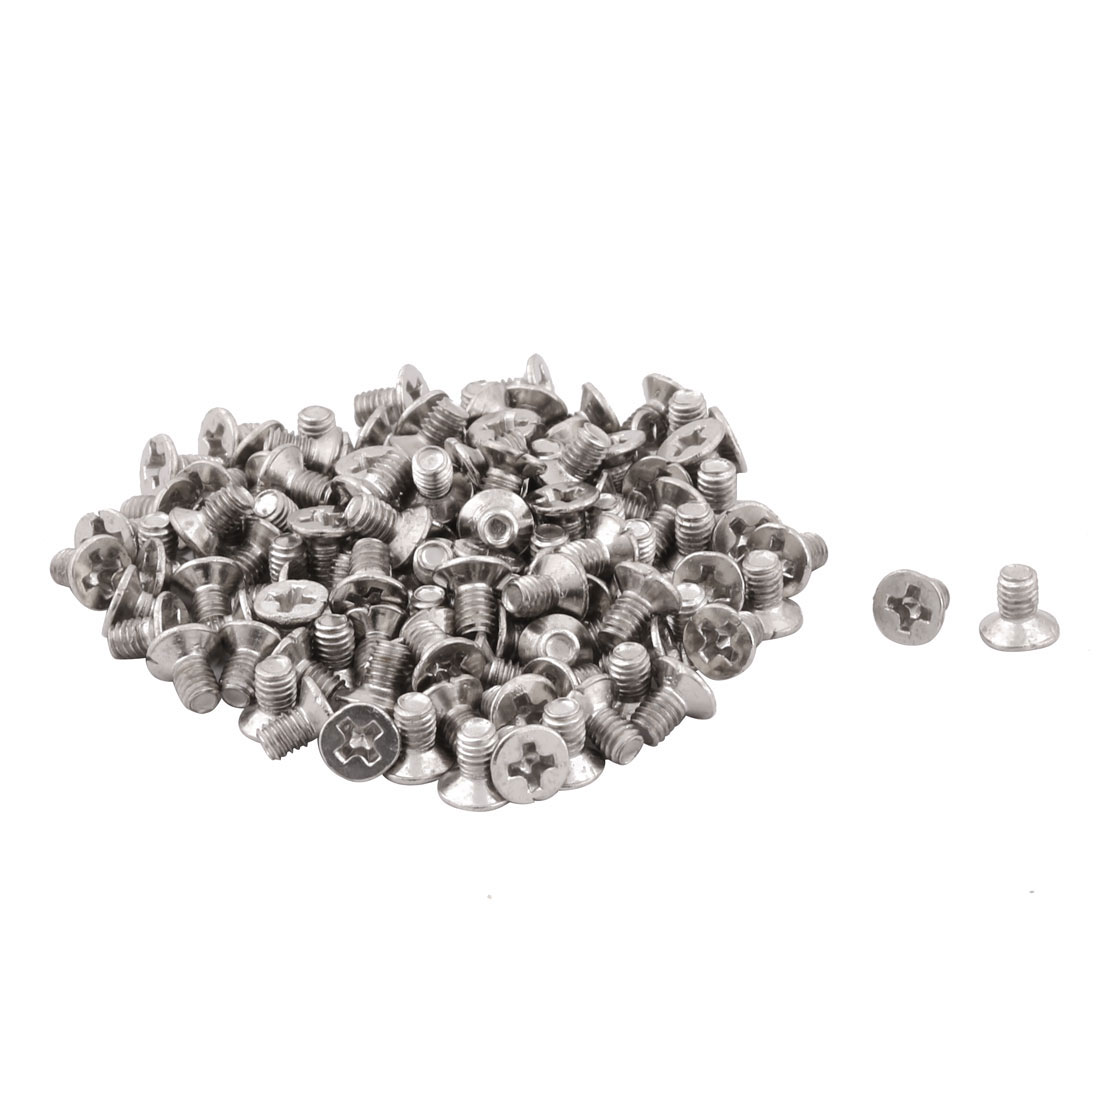 Family Canteen Stainless Steel Furniture Table Hardware Machine Bolts 120 Pcs - image 3 de 3